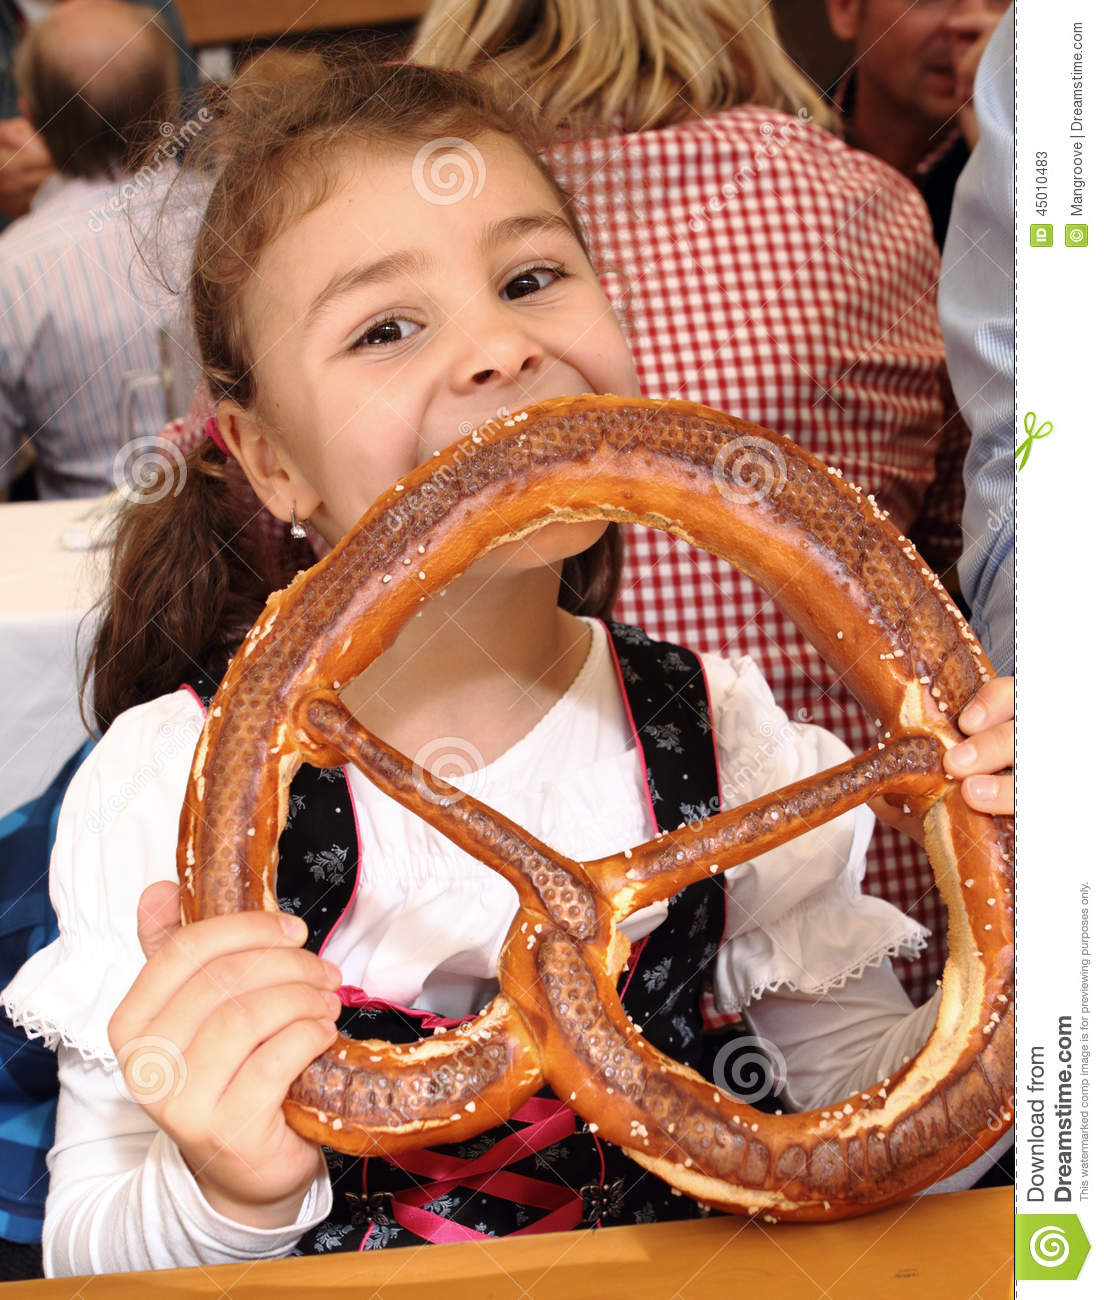 Baby Model München Child Eating Pretzel At Oktoberfest Munich Germany Stock